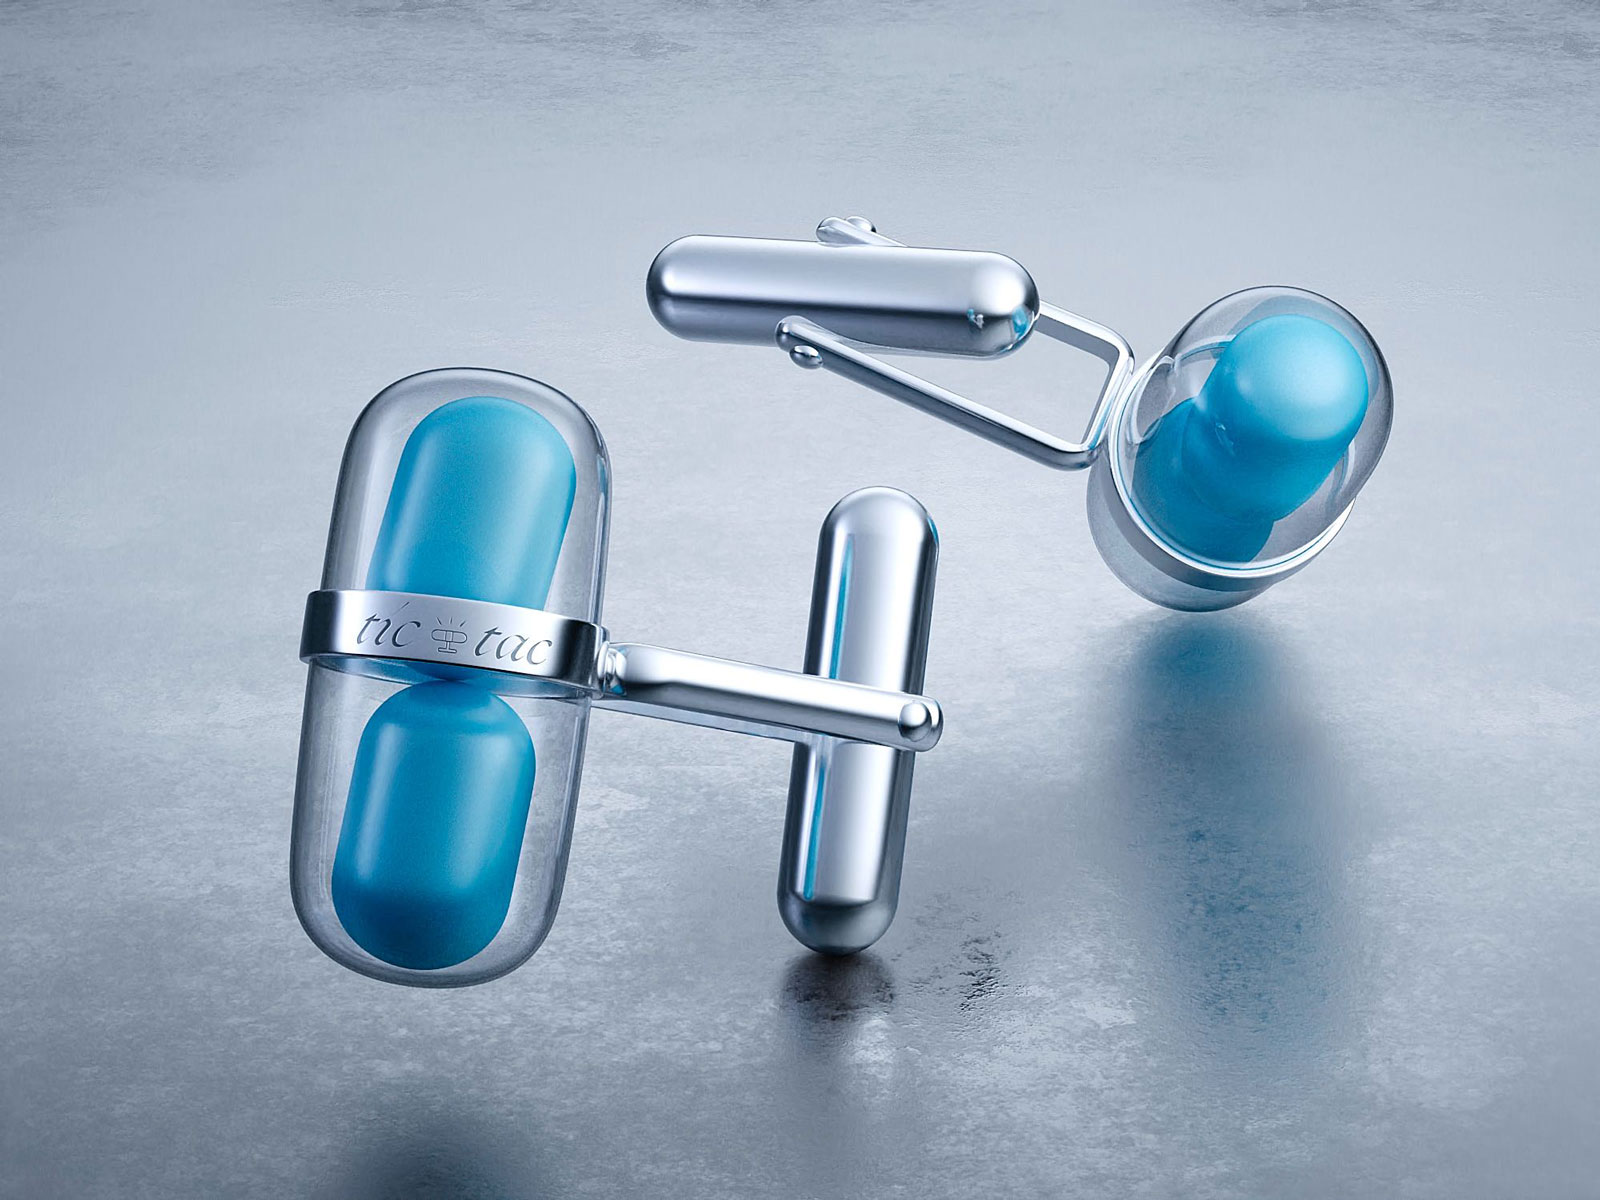 Tic Tac Created a Pair of Mint-Holding 'Luxury Cufflinks'